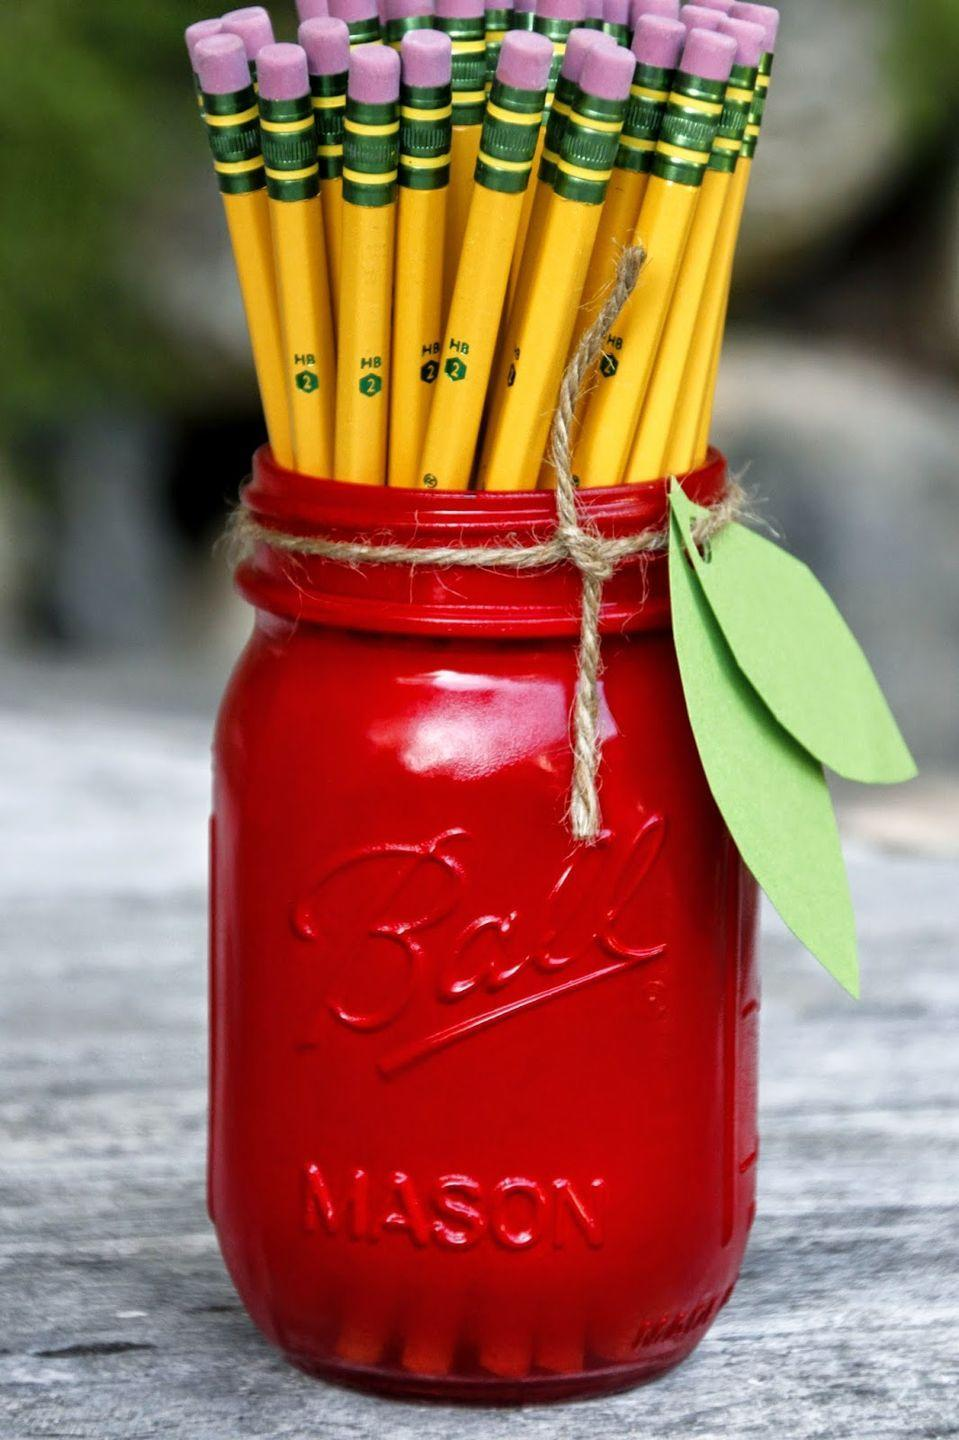 """<p>Use it as a pencil holder, or a catch-all for things like paper clips and thumb tacks. These also make great <a href=""""http://www.goodhousekeeping.com/holidays/gift-ideas/g1432/teacher-gifts/"""" rel=""""nofollow noopener"""" target=""""_blank"""" data-ylk=""""slk:teacher gifts"""" class=""""link rapid-noclick-resp"""">teacher gifts</a>. </p><p><em><a href=""""http://www.tillysnest.com/2014/08/down-home-blog-hopnumber-94-apple-mason.html"""" rel=""""nofollow noopener"""" target=""""_blank"""" data-ylk=""""slk:Get the tutorial at Tilly's Nest »"""" class=""""link rapid-noclick-resp"""">Get the tutorial at Tilly's Nest »</a></em></p>"""